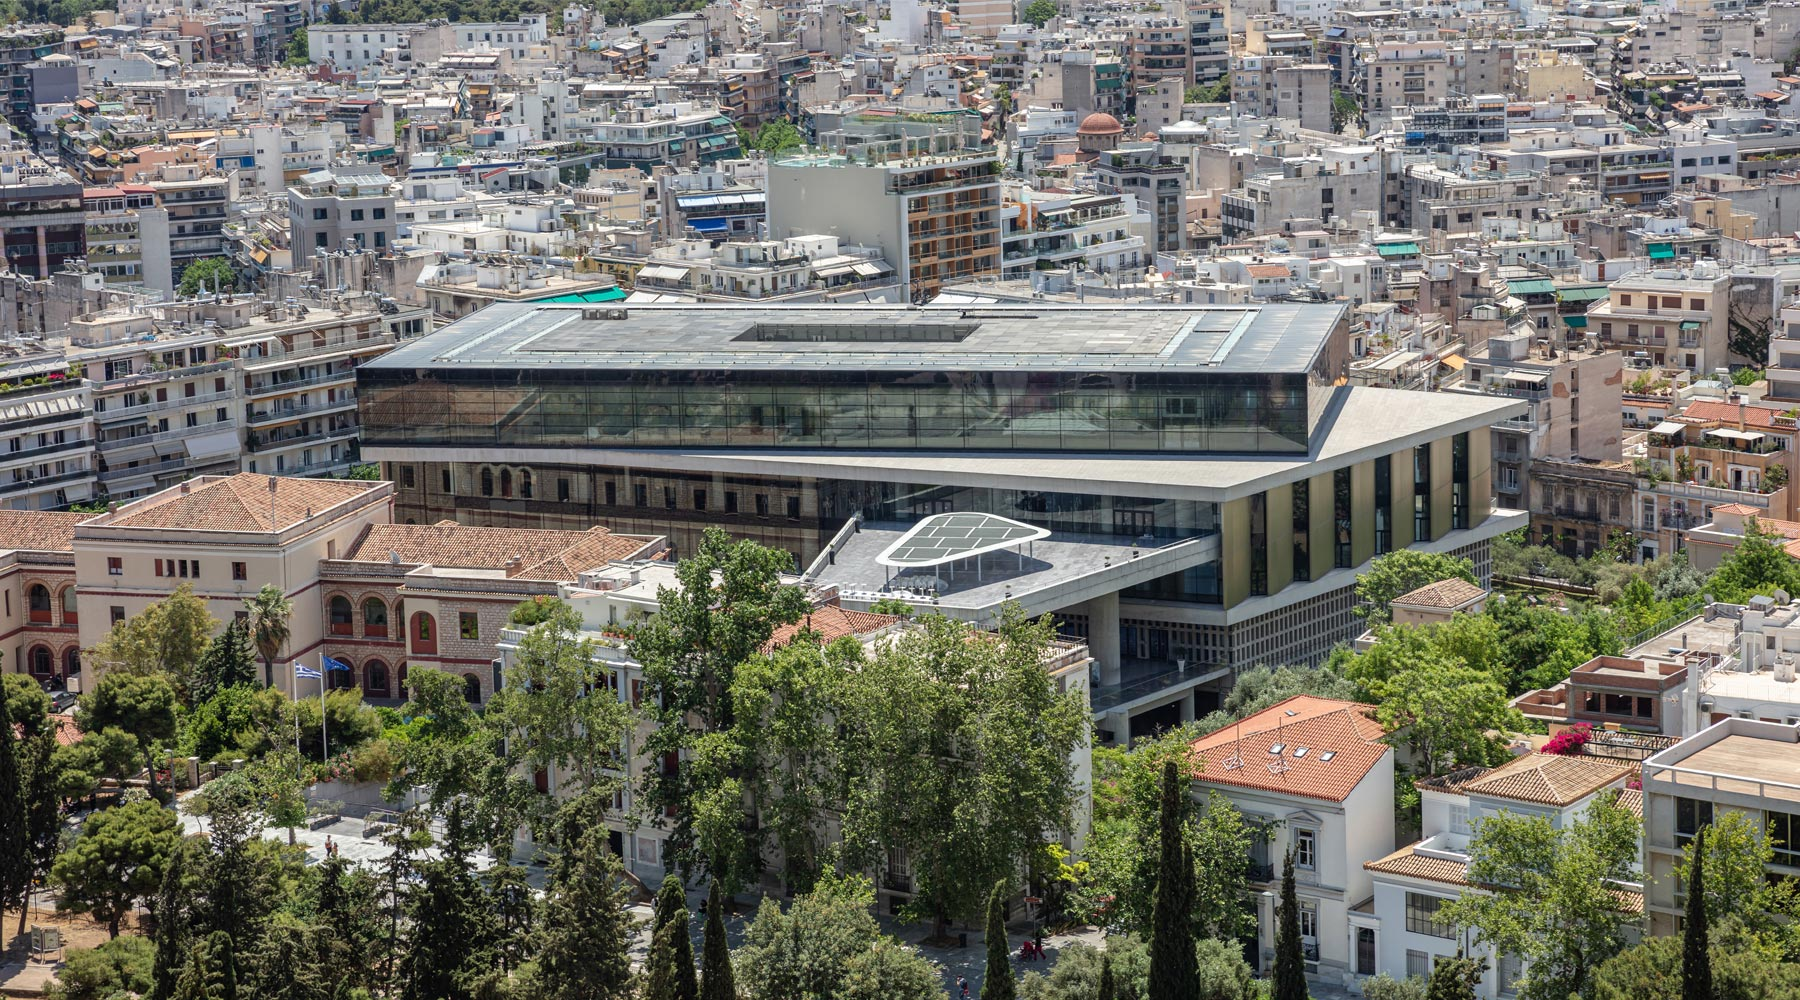 Acropolis Museum in Greece